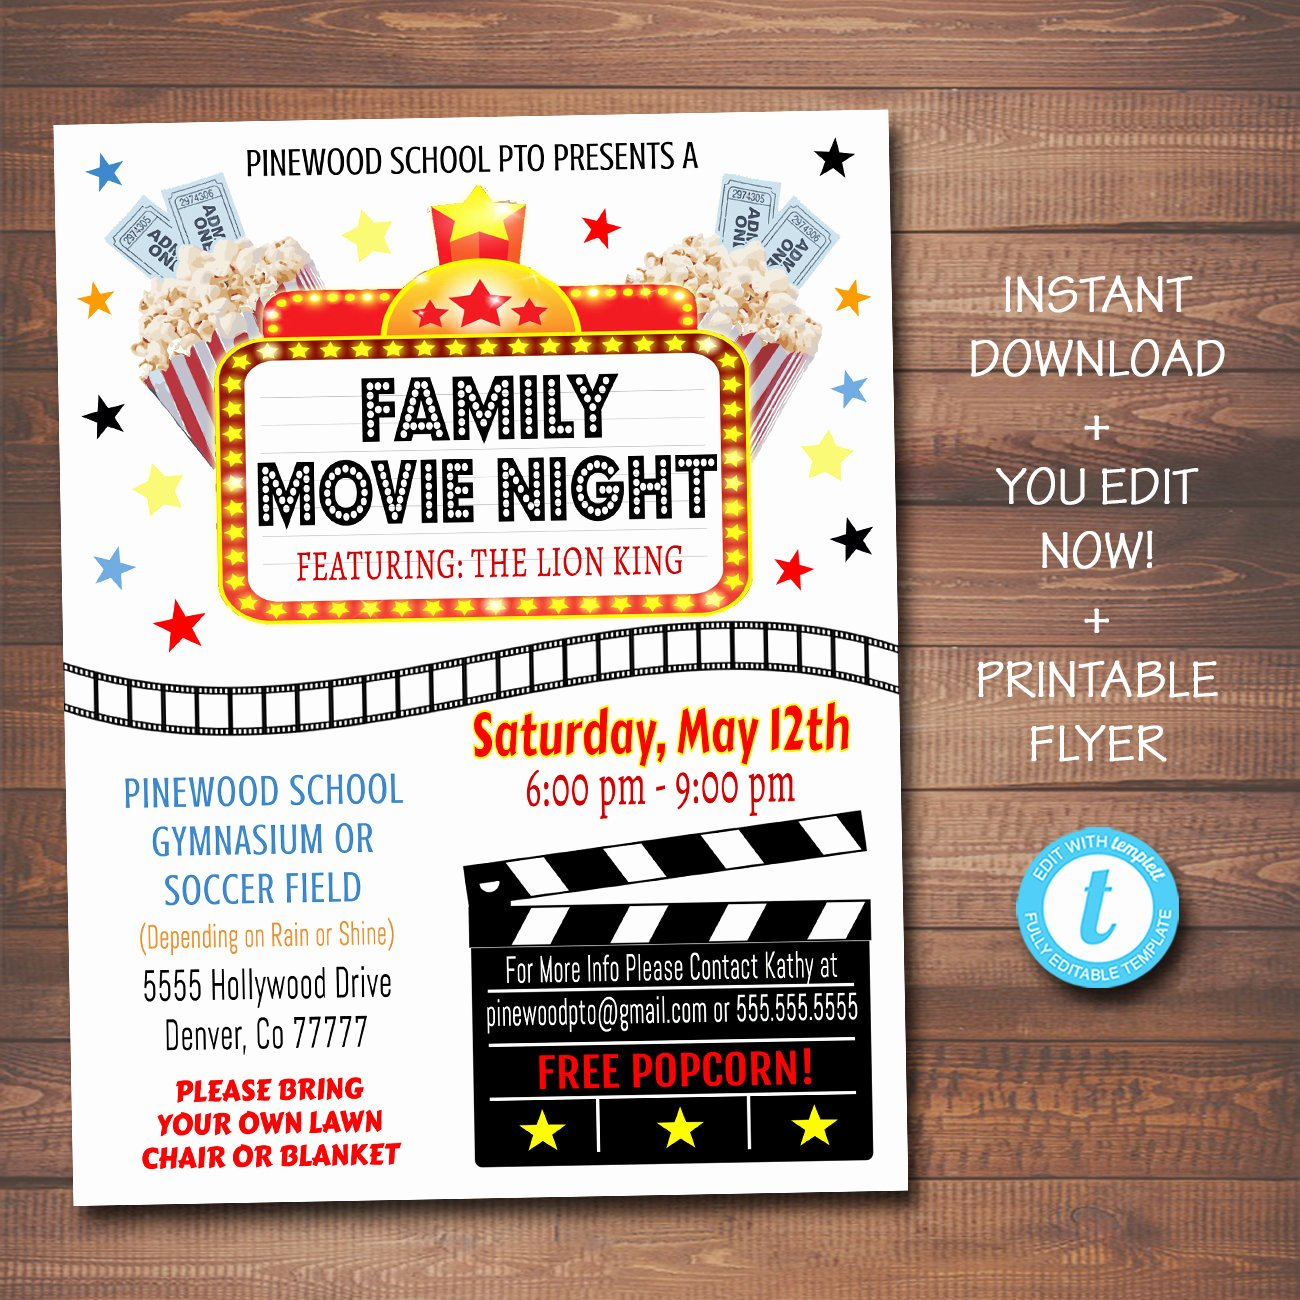 Movie Night Flyer Template Best Of Editable Movie Night Flyer Printable Pta Pto Flyer School